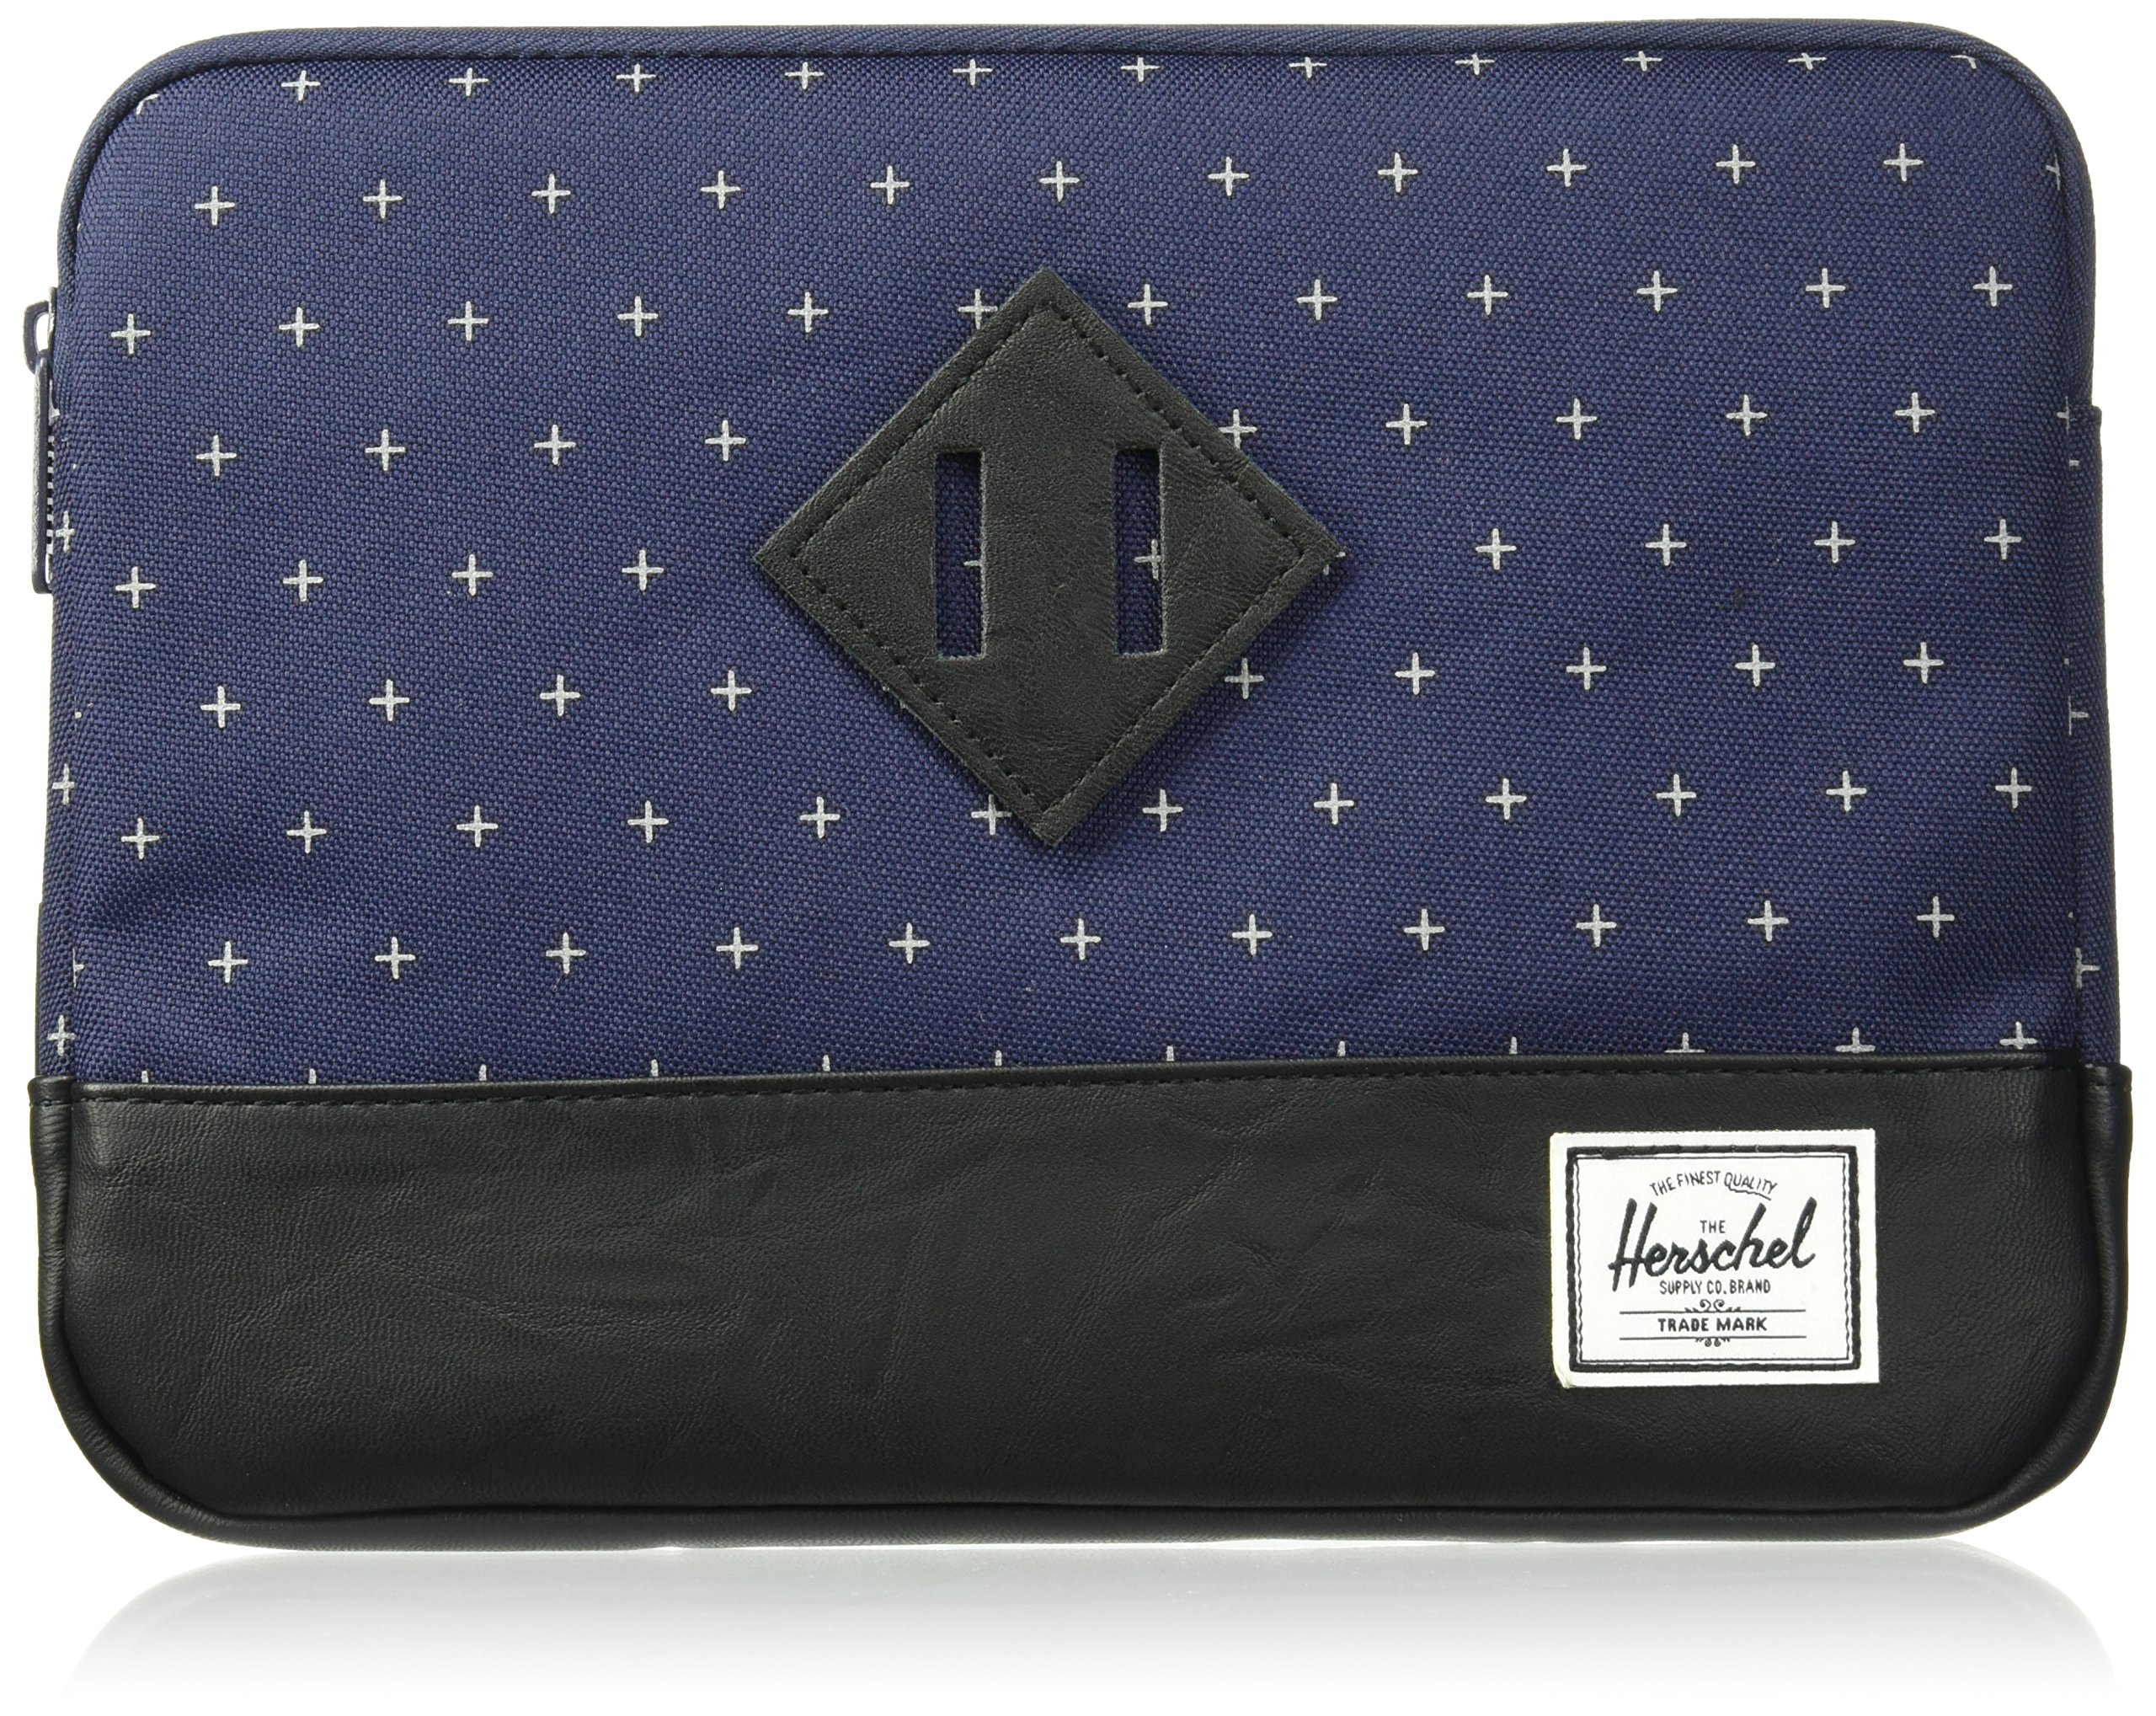 Herschel Supply Co. Men's Heritage Sleeve Ipad Air, Peacoat Gridlock/Black Synthetic Leather, One Size